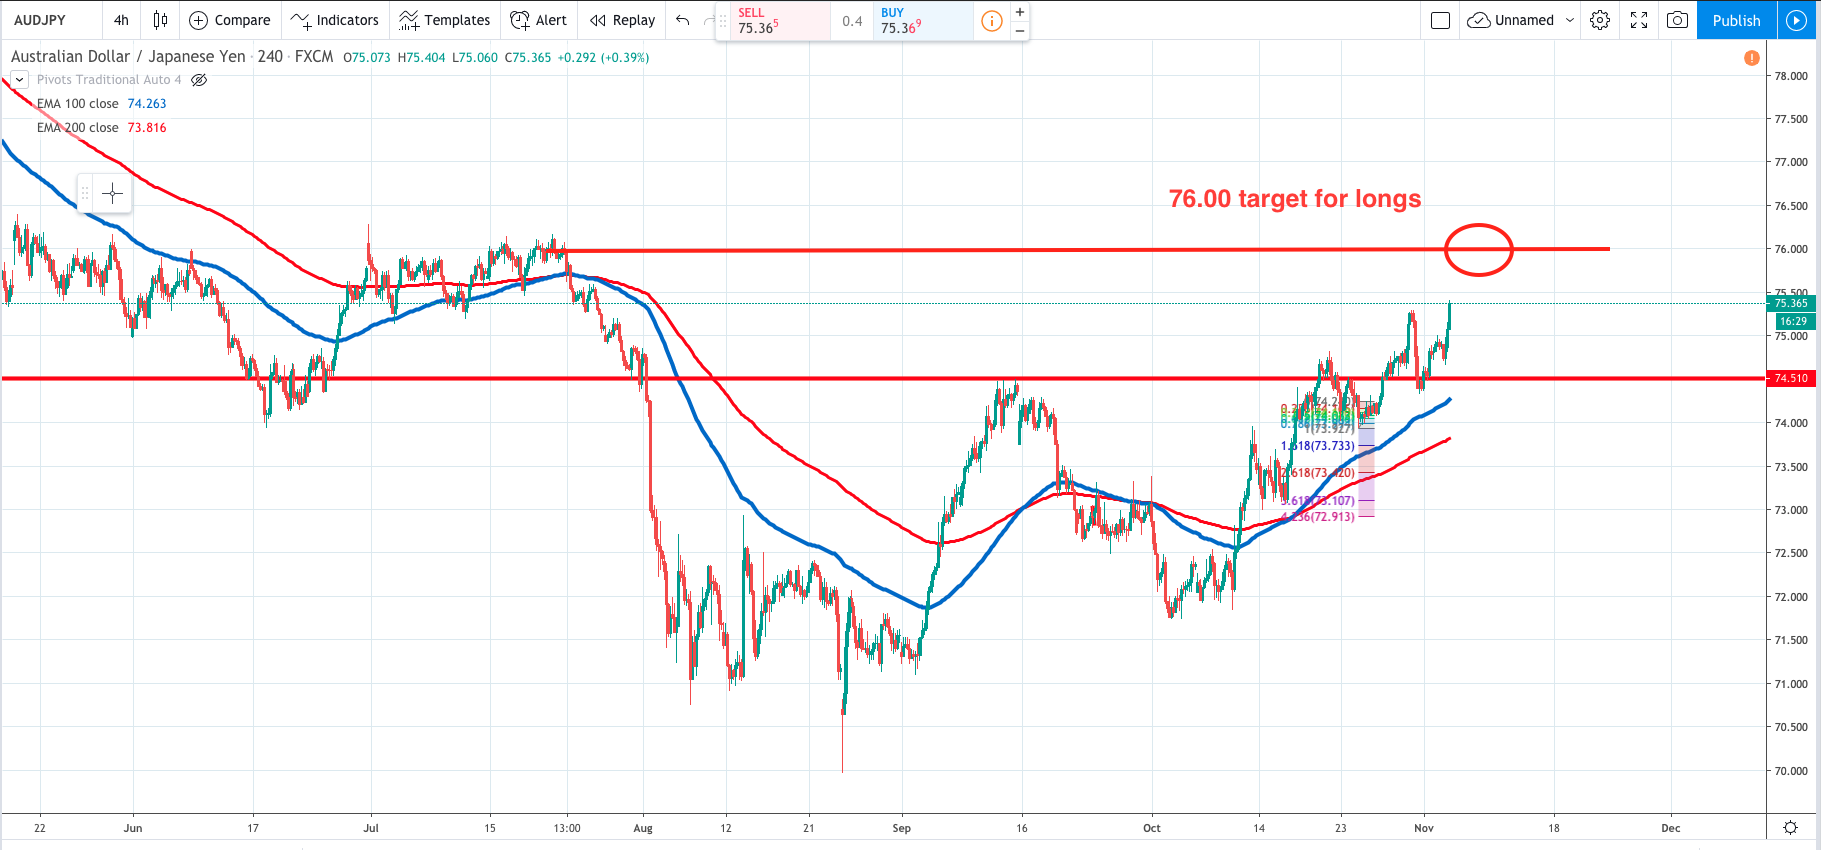 AUDJPY hits highest level since July with risk on tones